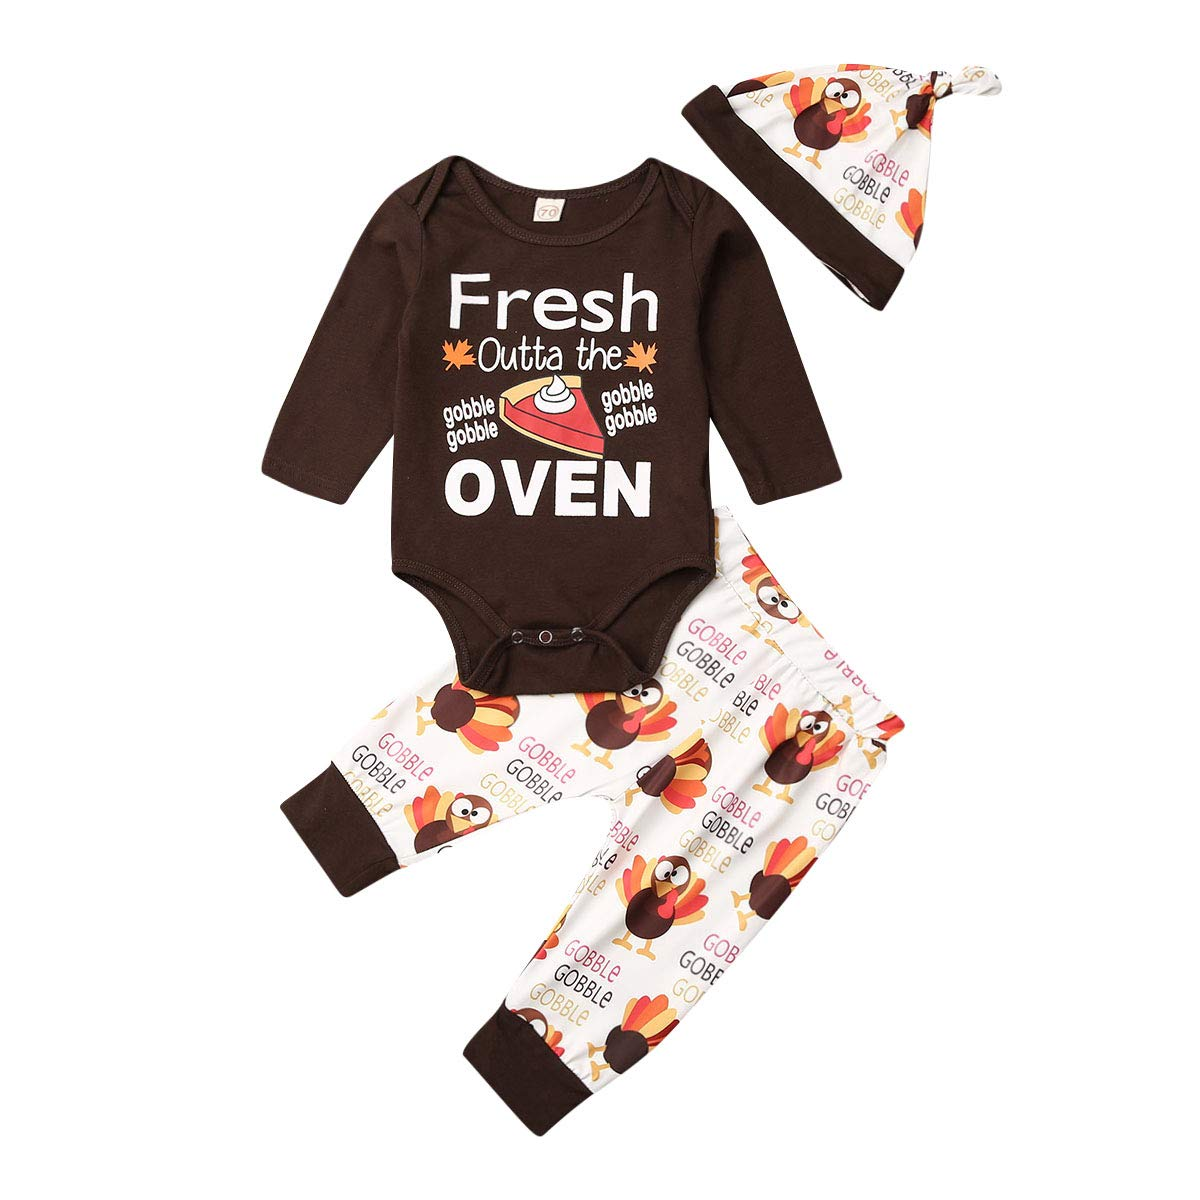 Newborn Baby Boy Girl Thanksgiving Fresh Outta The Oven Long Sleeve Romper+Turkey Pants+Hat 3Pcs Outfit Set